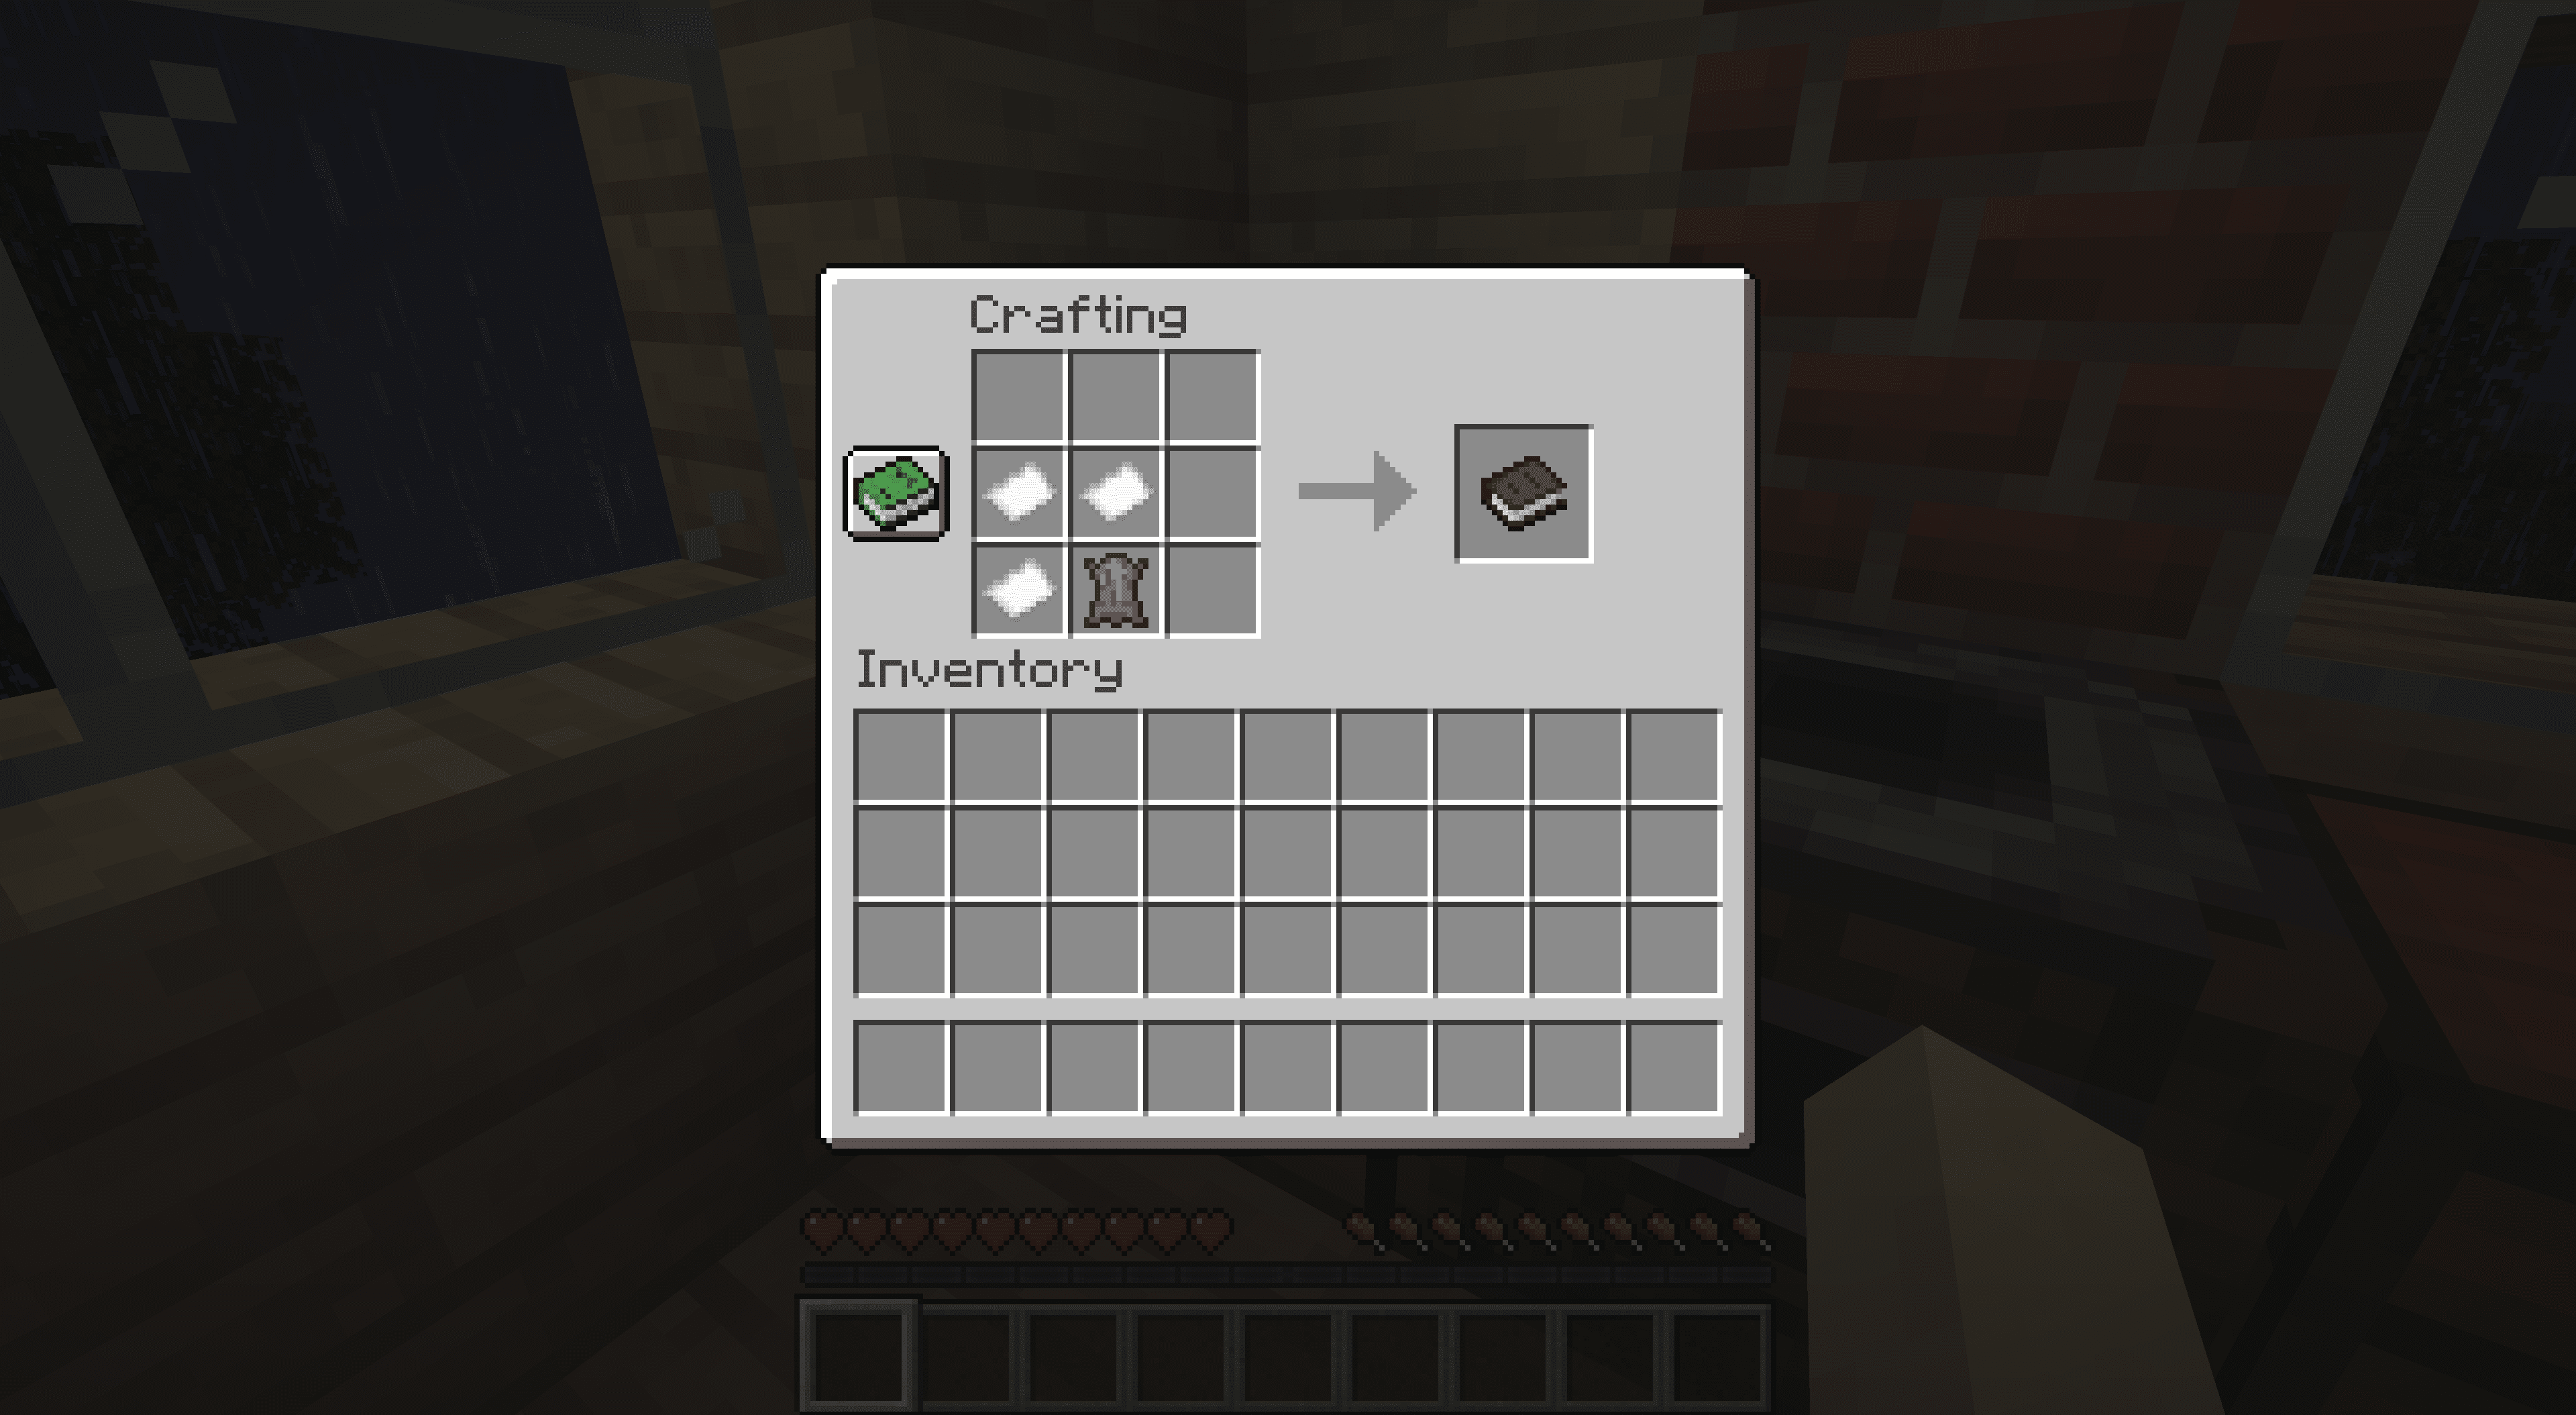 The recipe for crafting a book in Minecraft.